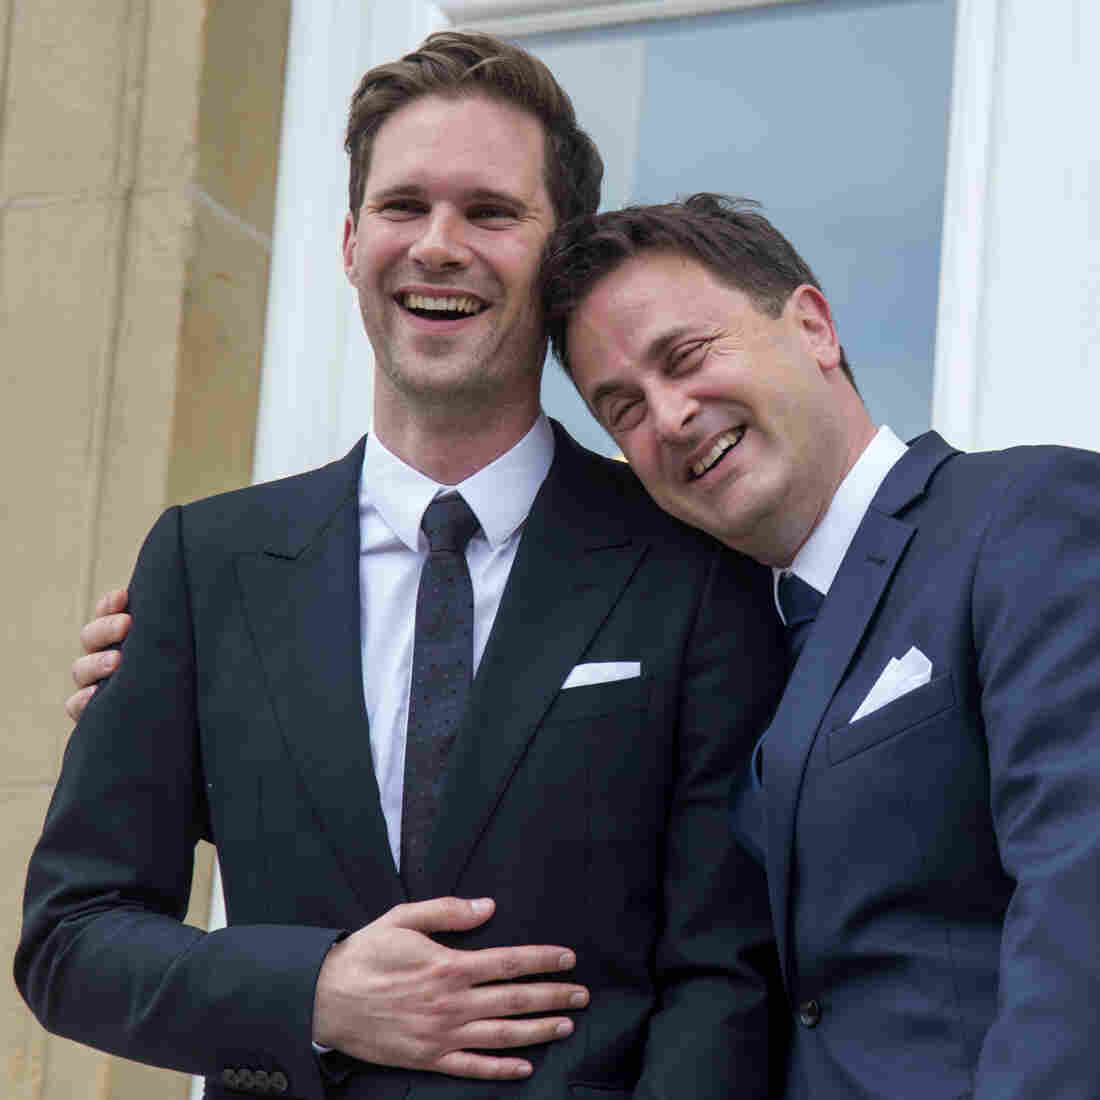 Luxembourg Prime Minister Becomes First EU Leader To Marry Same-Sex Partner